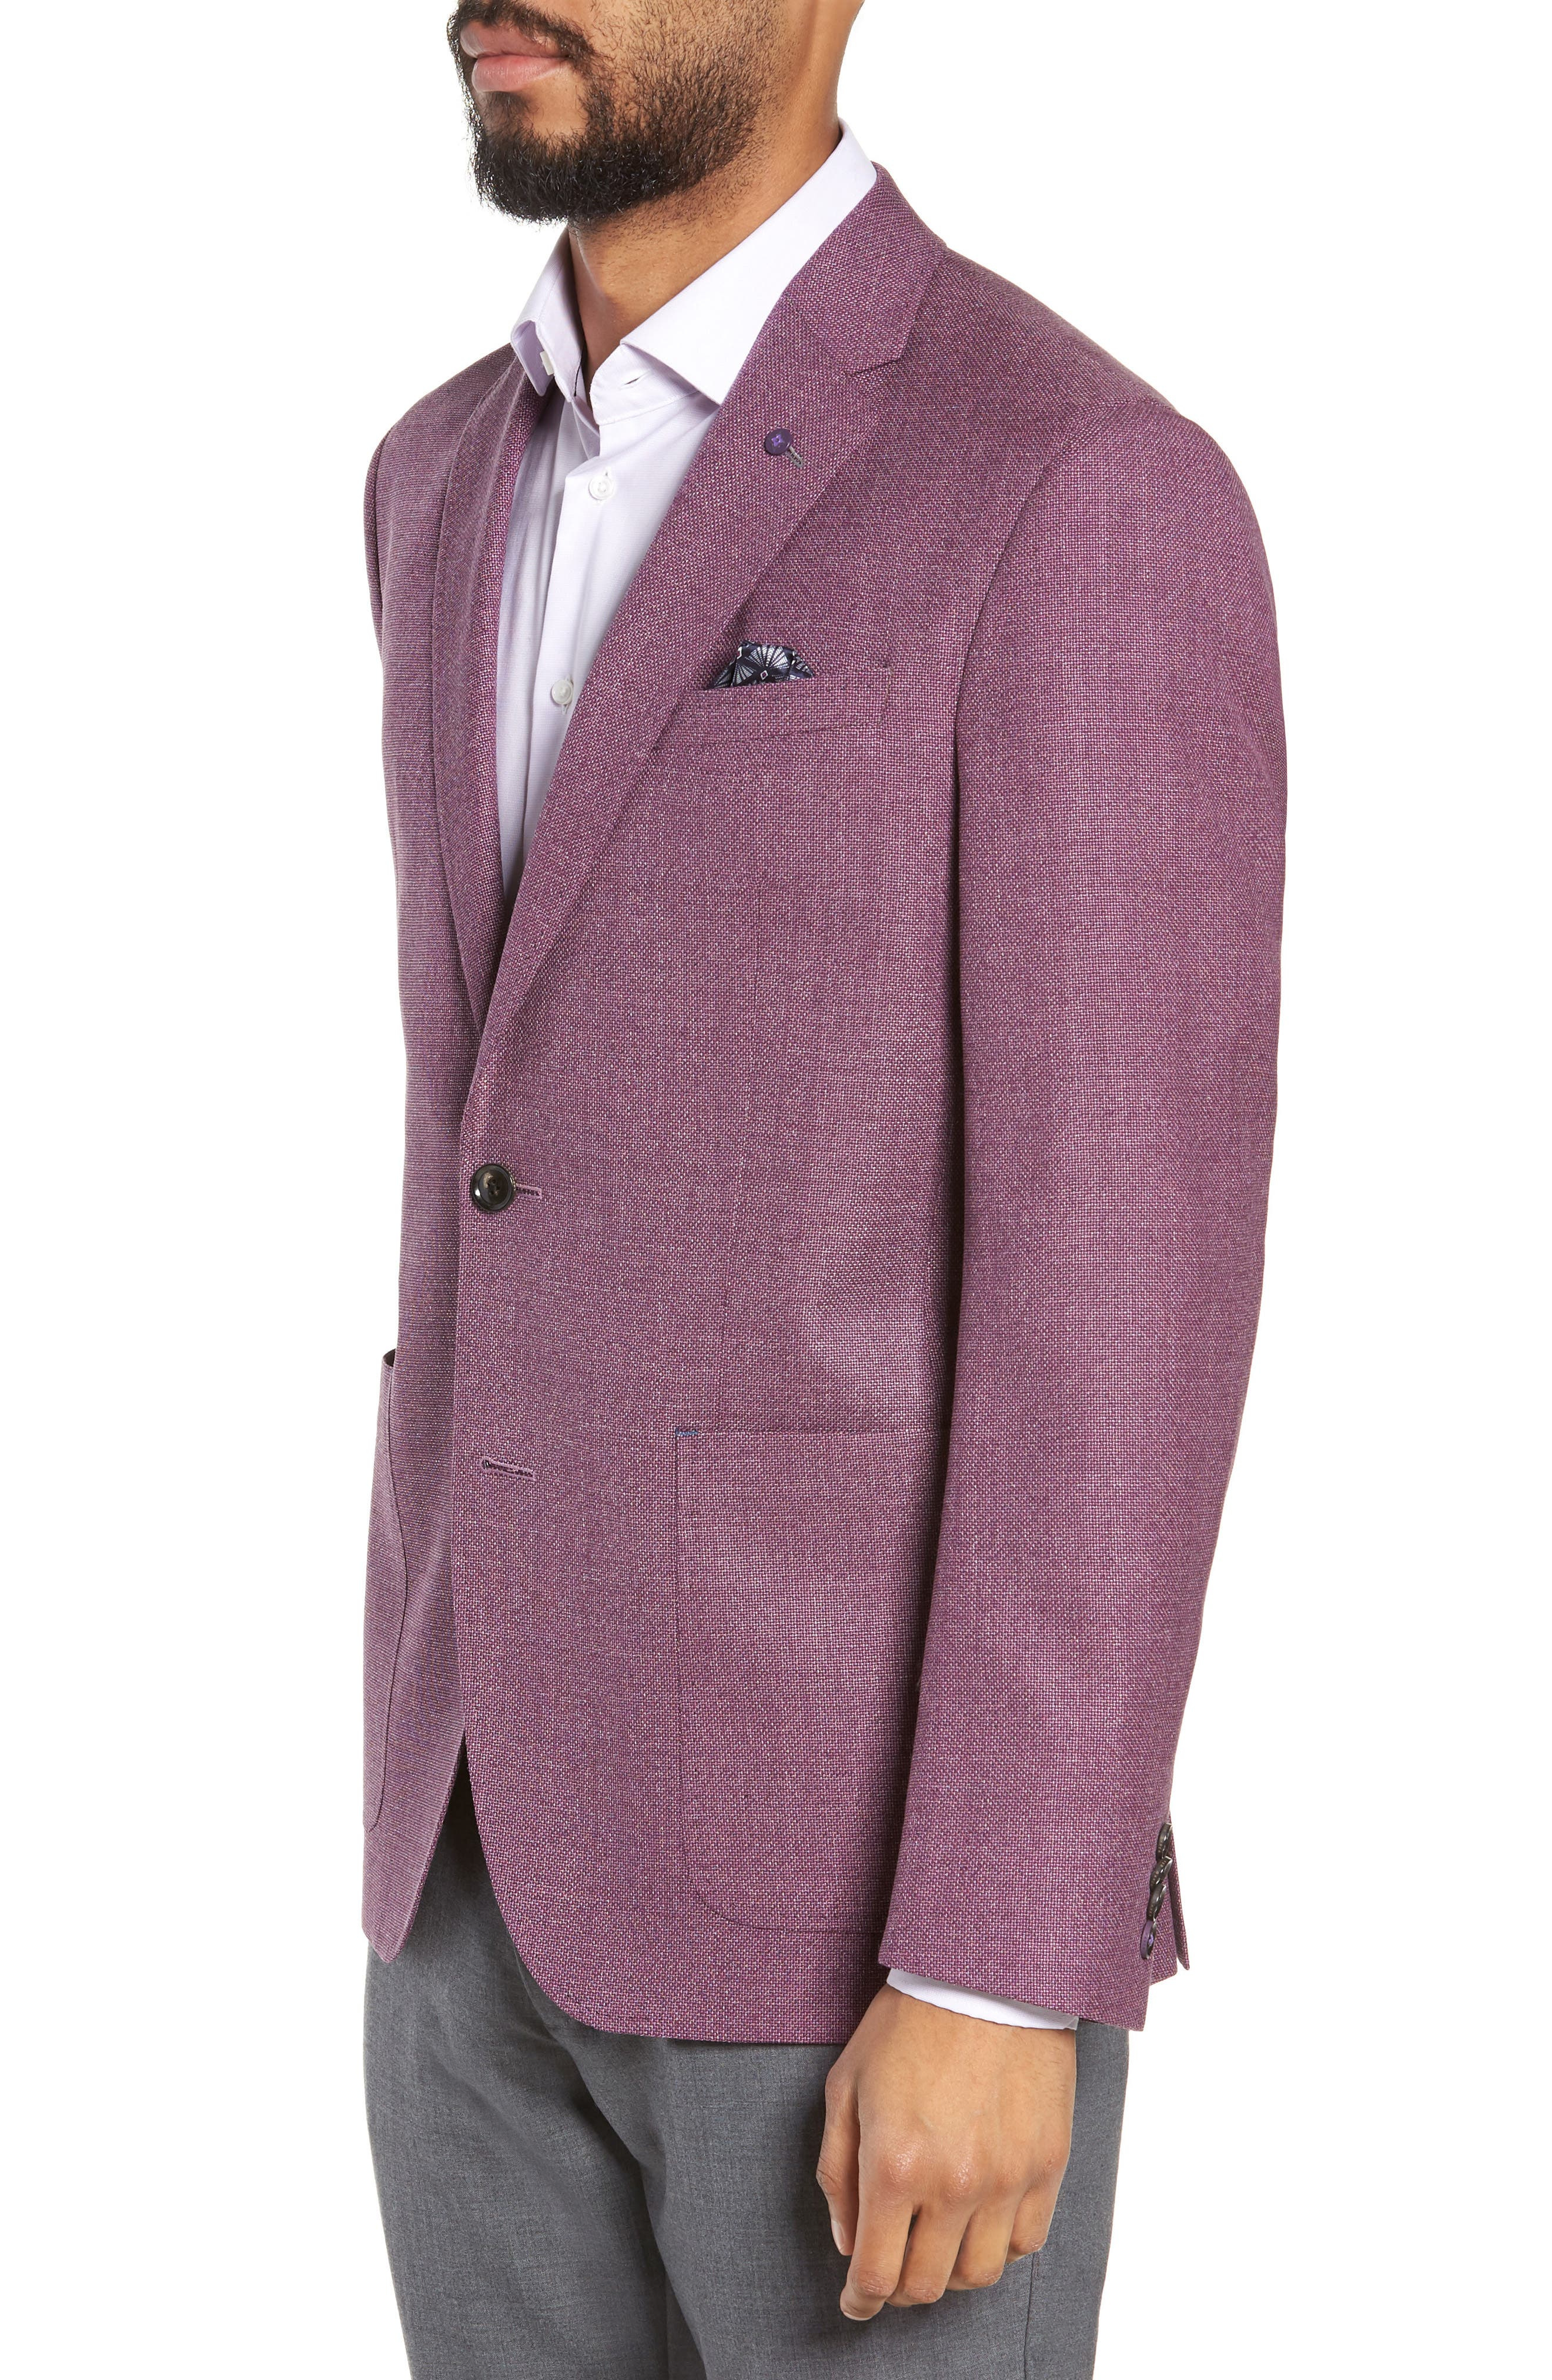 TED BAKER LONDON, Kyle Trim Fit Wool Sport Coat, Alternate thumbnail 3, color, BERRY